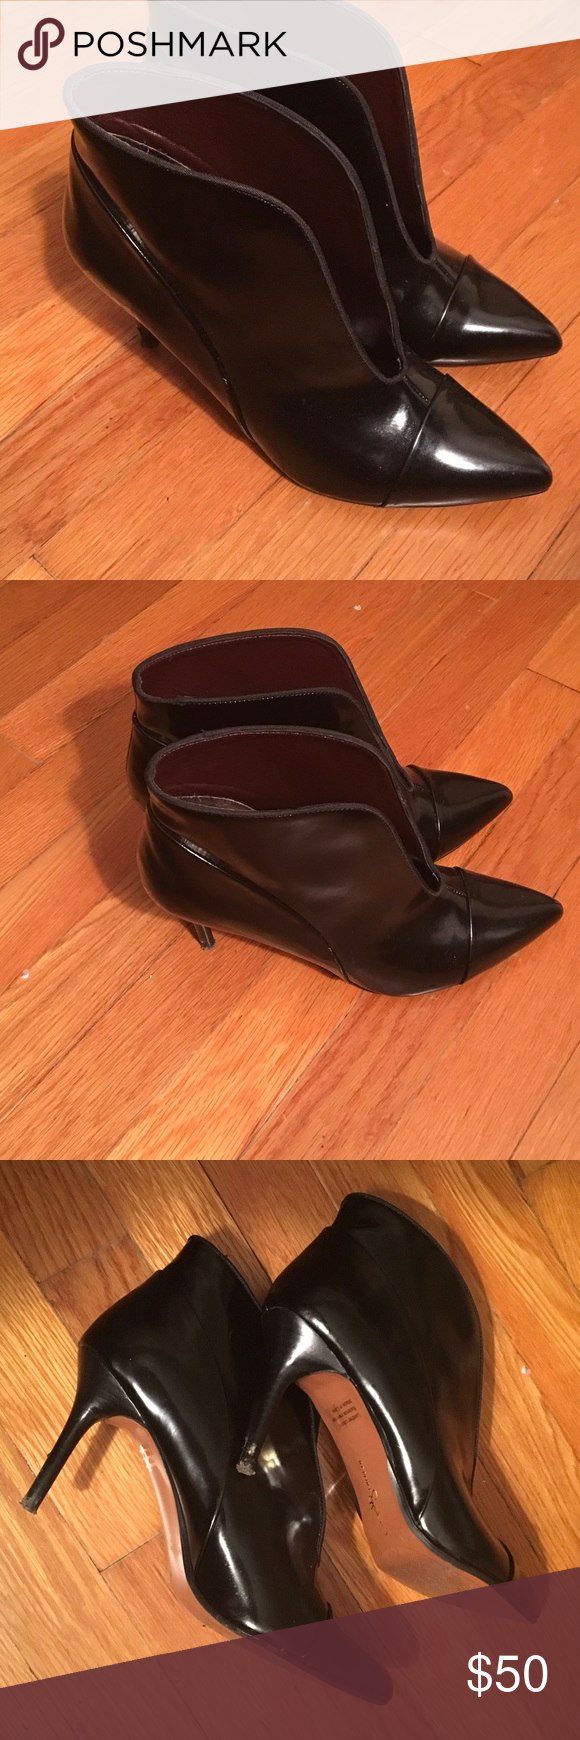 """Report Signature ankle booties Gorgeous, shiny patent leather boots. 3"""" heel. Perfect for the Fall paired with joggers or a cute skirt and tights. I stubbornly bought them but the heel is just too much for me 😢. Only worn a couple of times, almost like new but I somehow got a scratch on one of the heels 👠... price reflects this small flaw! Report Signature Shoes Ankle Boots & Booties"""